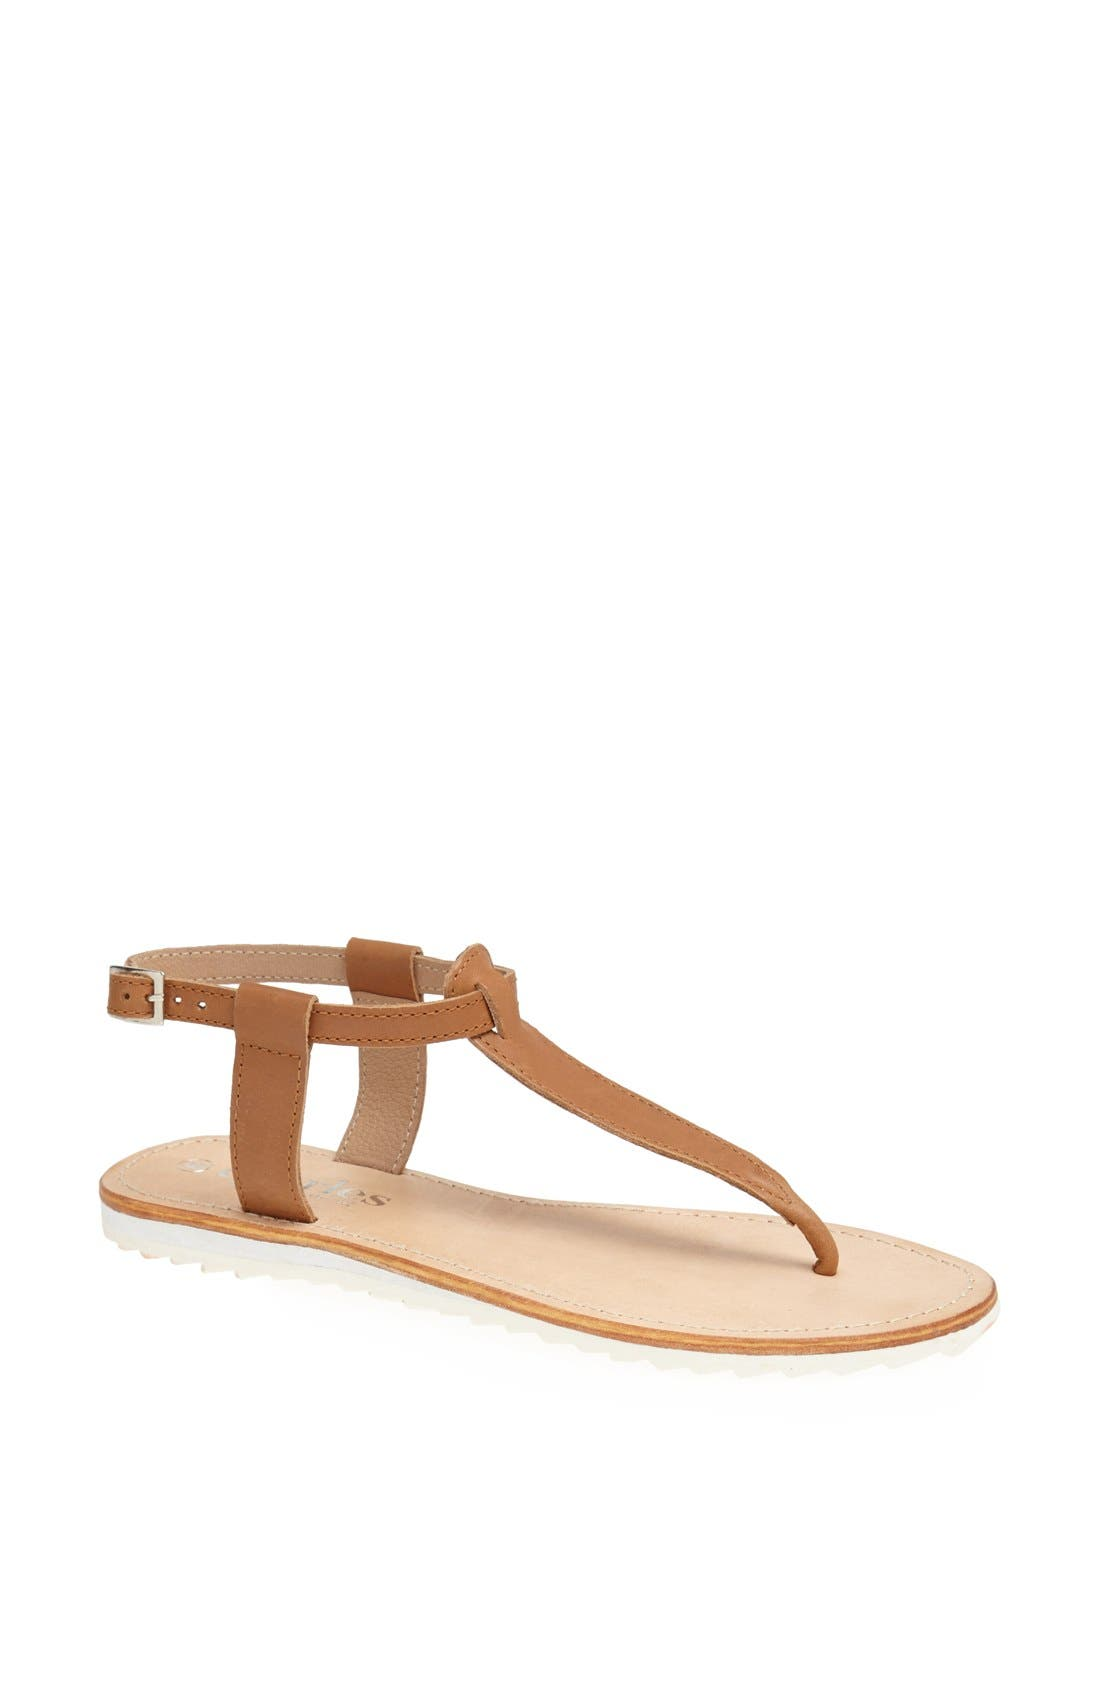 Alternate Image 1 Selected - Charles by Charles David 'Valley' Thong Sandal